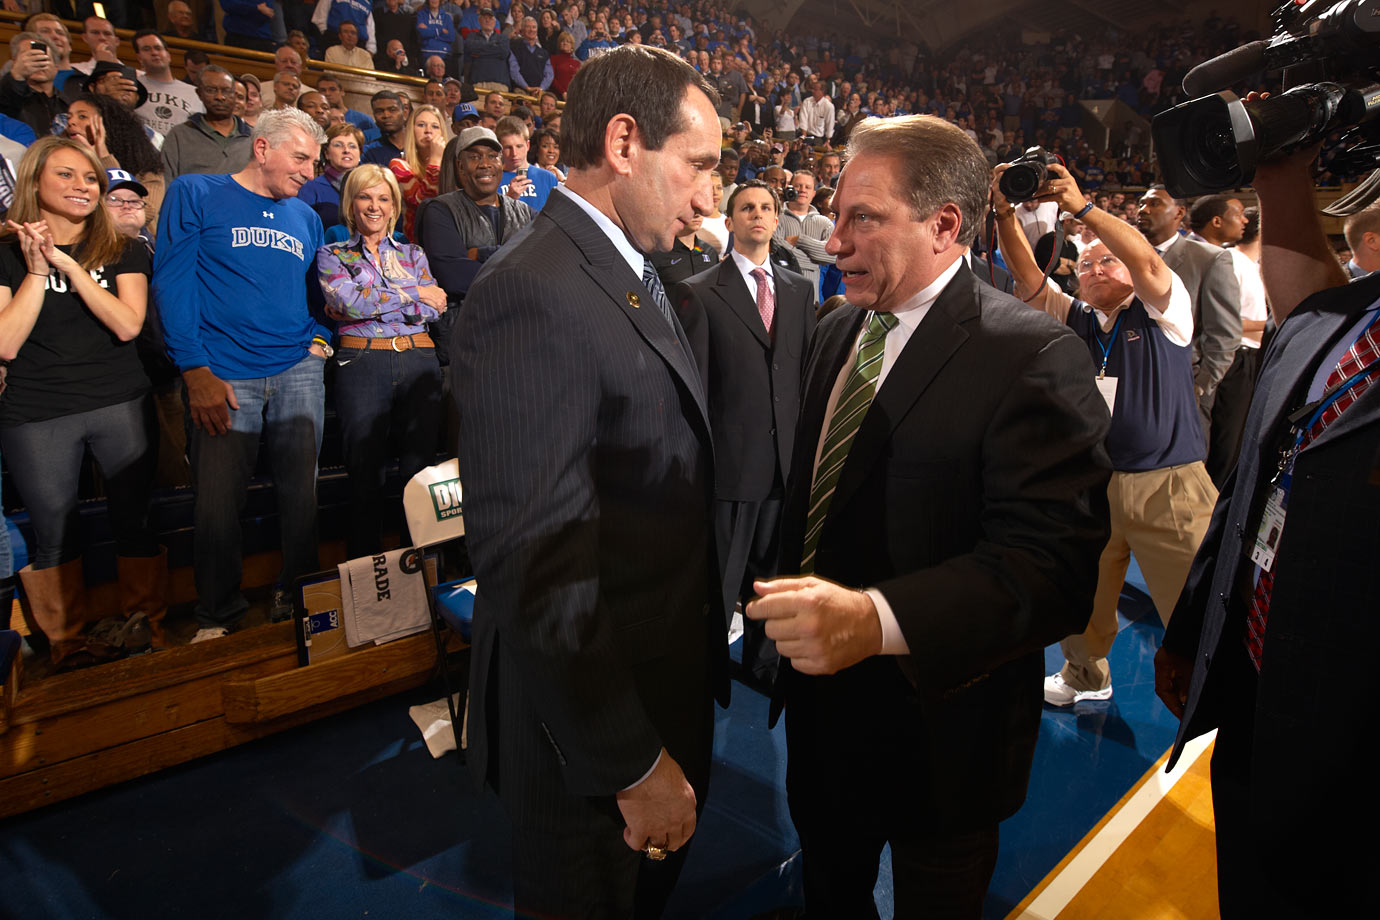 Mike Krzyzewski chats with Tom Izzo after Duke defeated Michigan State, 84-79, in 2010.